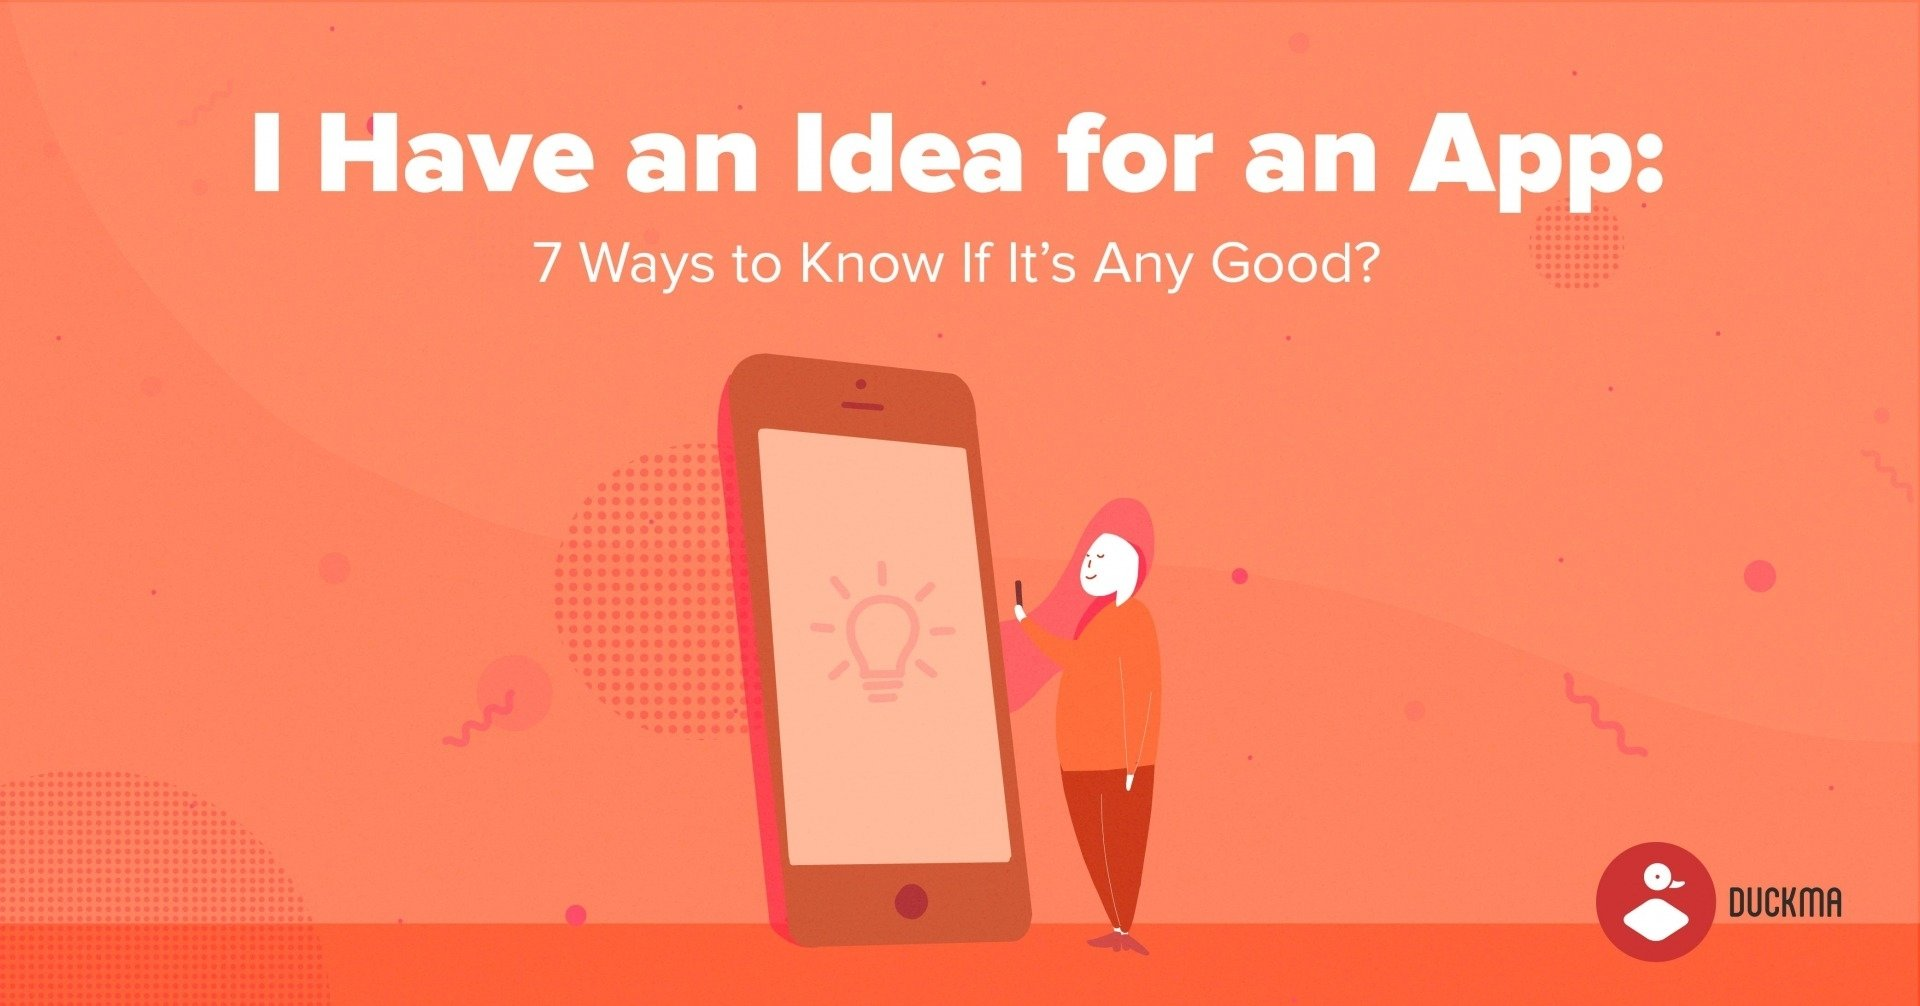 10 Stylish I Have A Great Idea For An App i have an idea for an app 7 ways to know if its any good duckma 2020